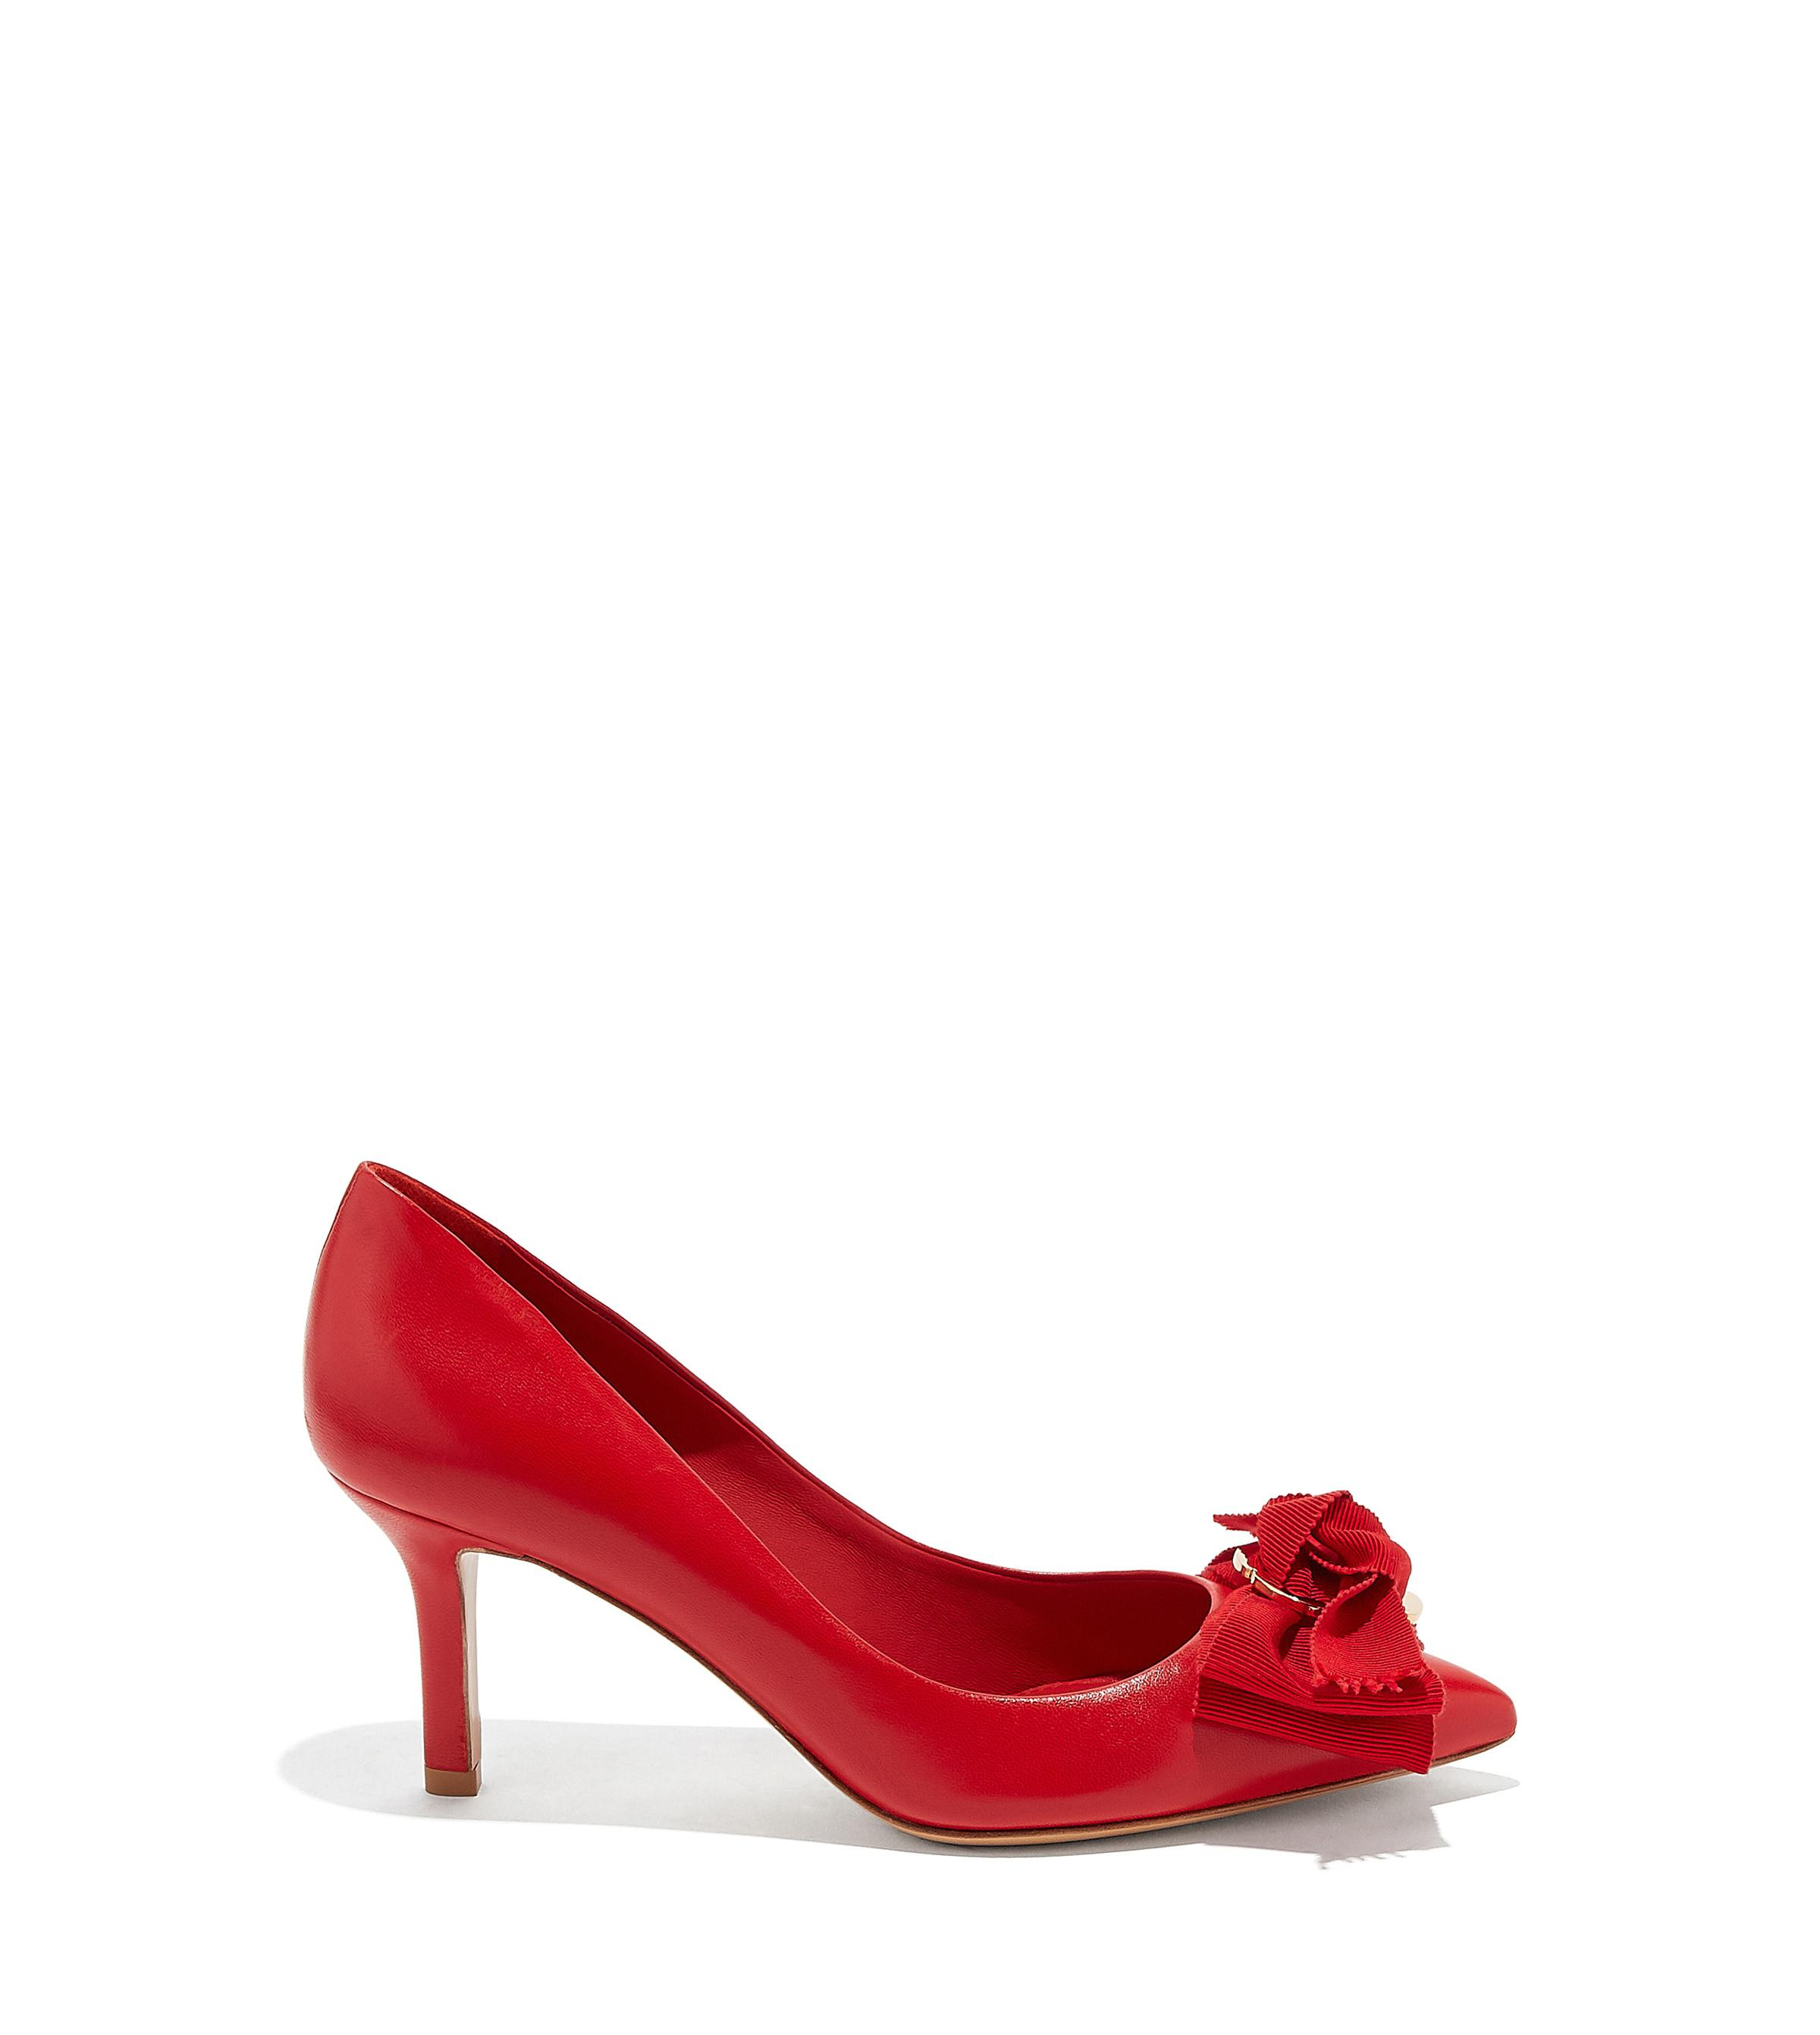 5d2ad0a5671 Lyst - Ferragamo Peony Bow Pump Shoe in Red